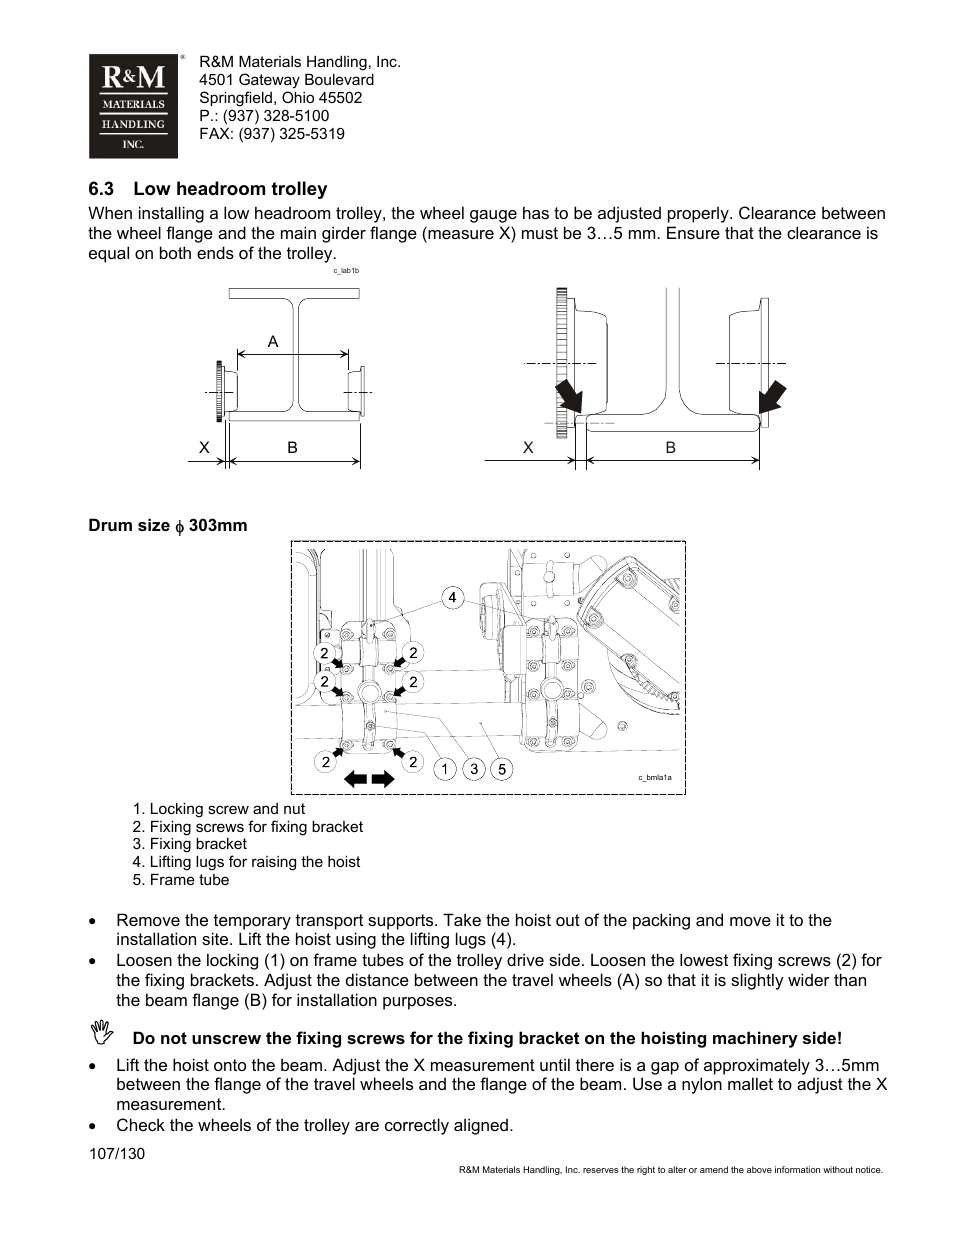 medium resolution of r m materials handling wire rope hoists service user manual page 107 130